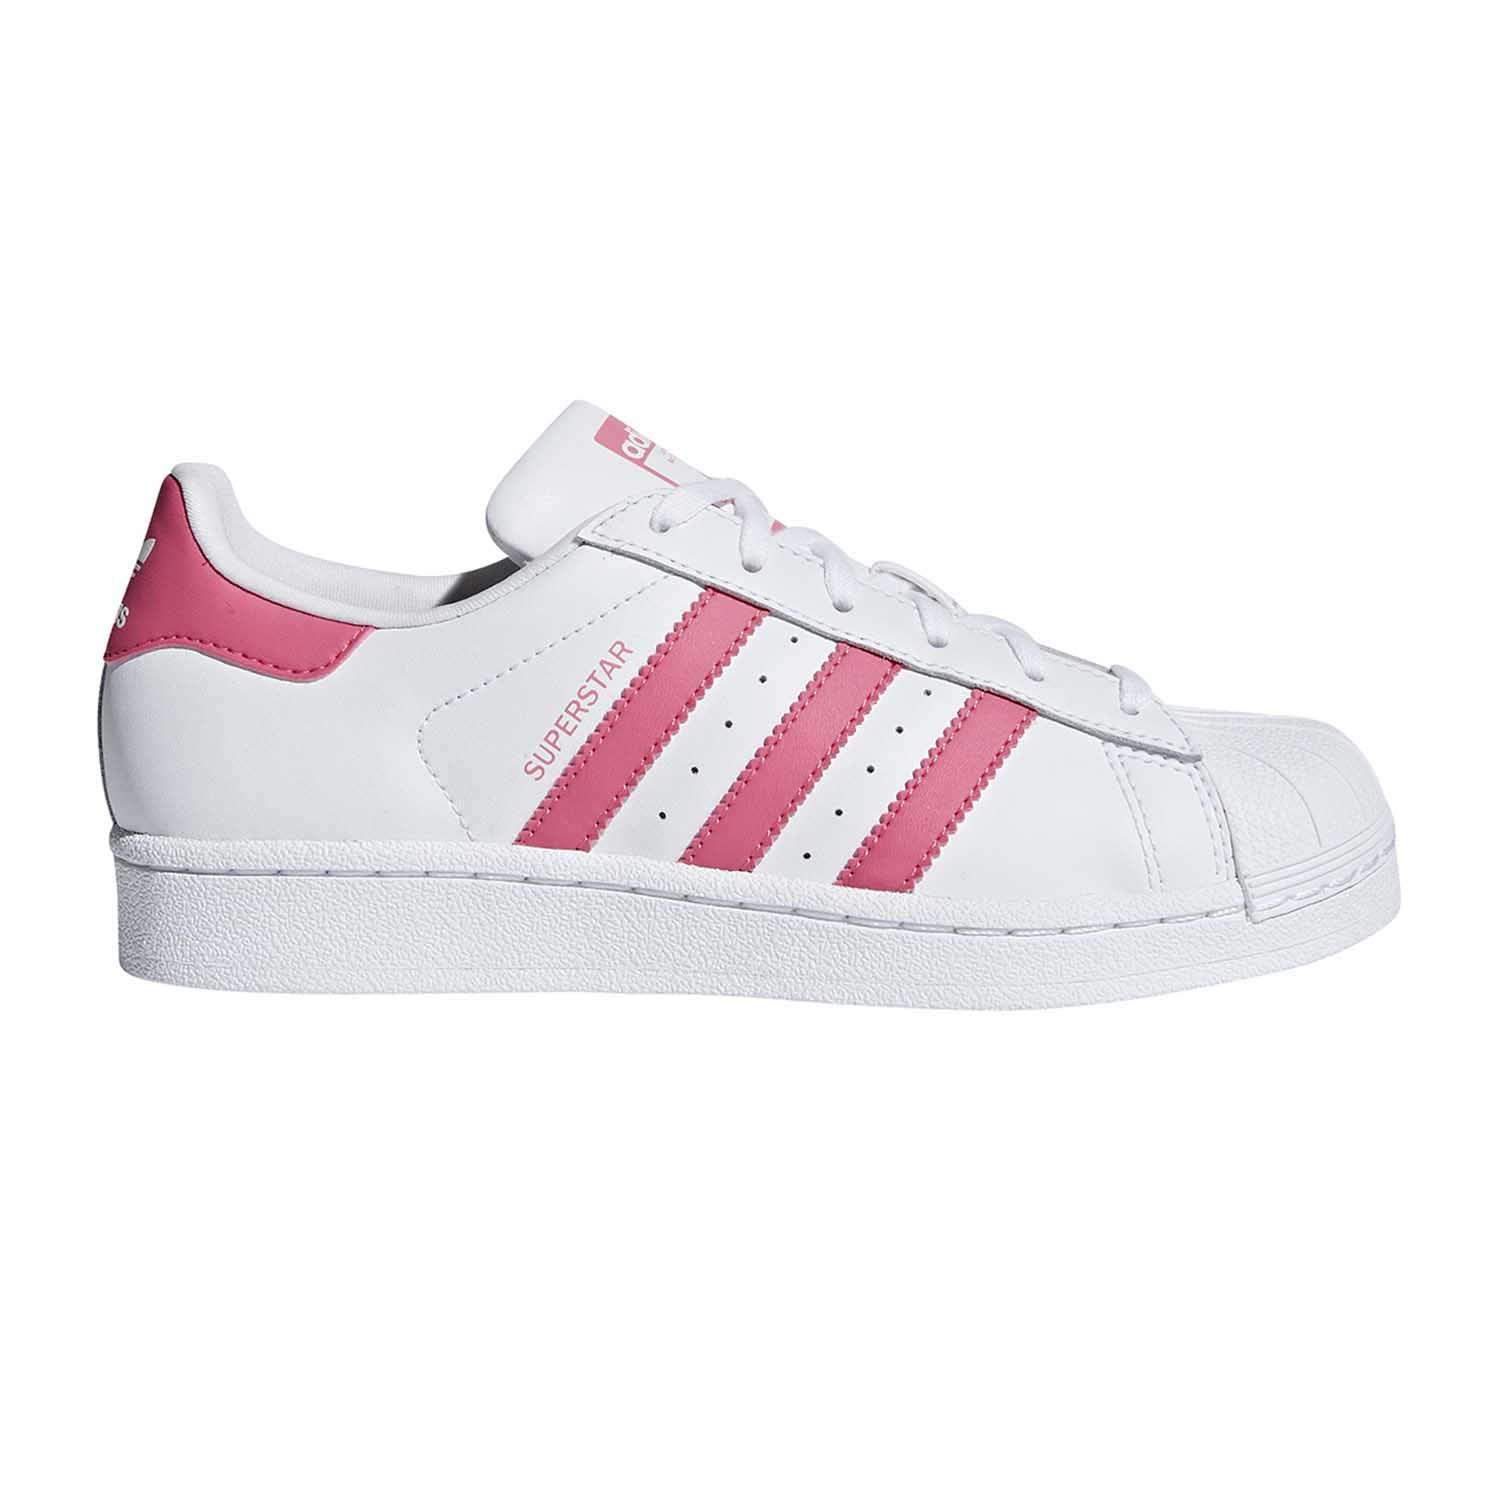 4acc8c8b755 ... Sneakers adidas Originals Superstar GS ( CG6608 )